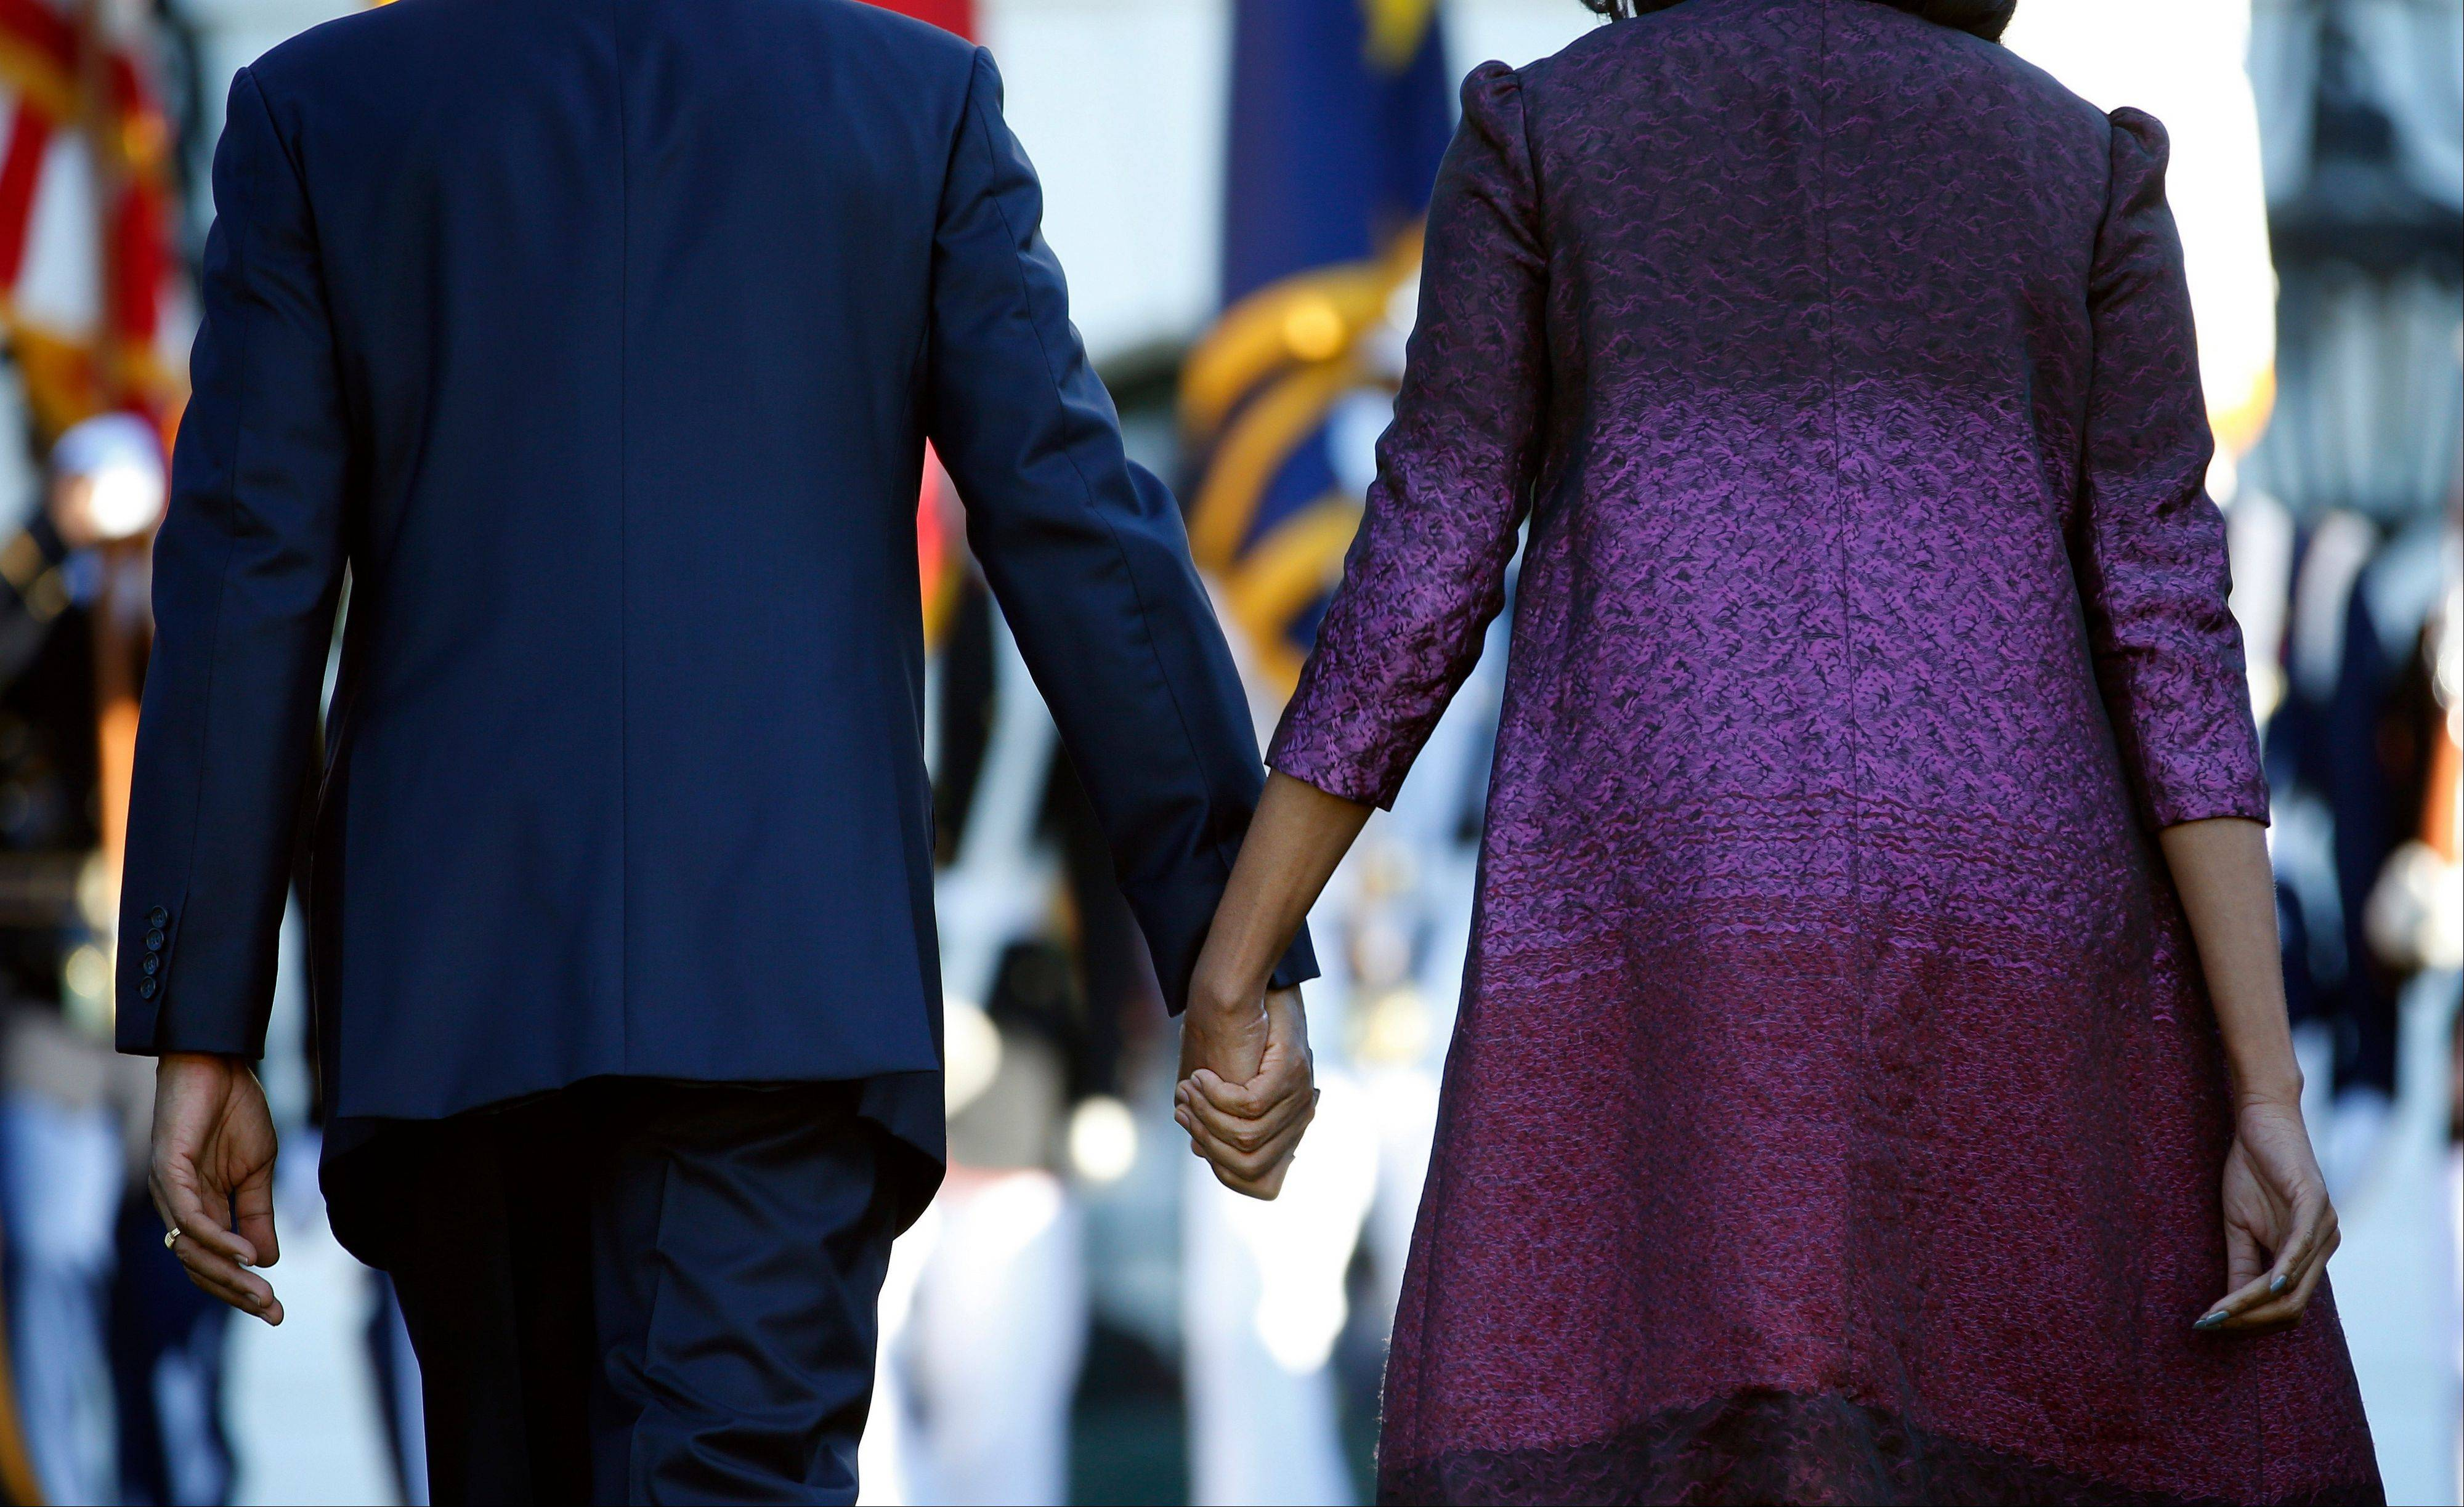 President Barack Obama and first lady Michelle Obama hold hands as they walk back to the White House in Washington, Tuesday, Sept. 11, 2012, after joining members of the White House staff during a moment of silence to mark the 11th anniversary of the Sept, 11th.